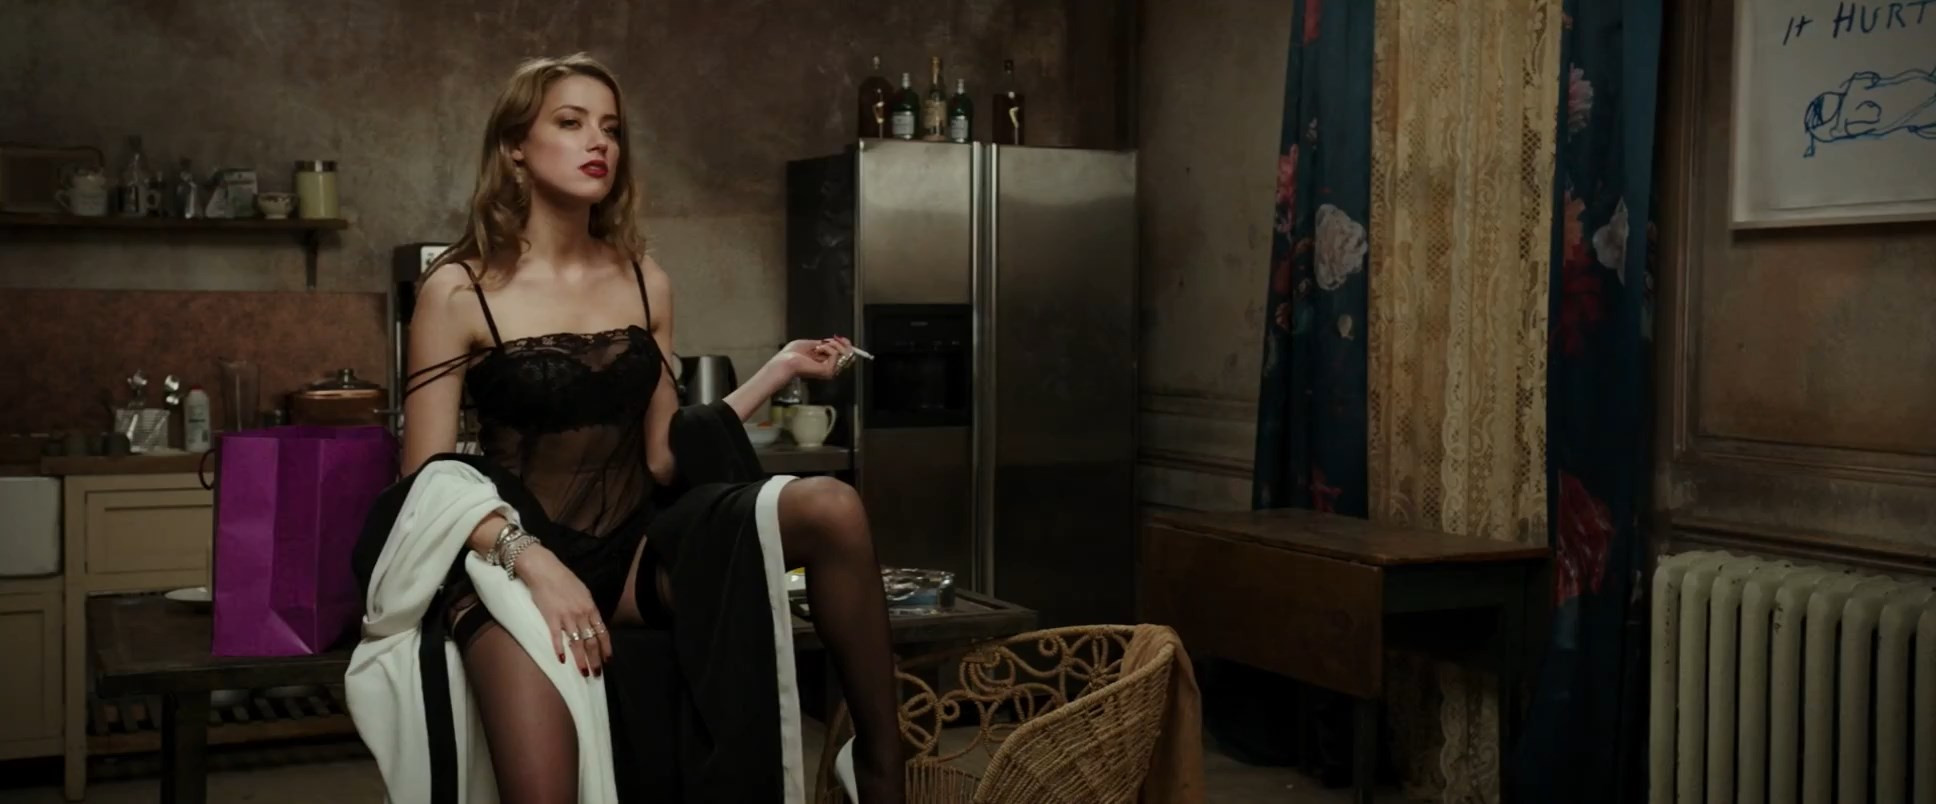 Amber Heard Nude and Sexy TheFappening.nu 298e9aa651bf58541f.jpg